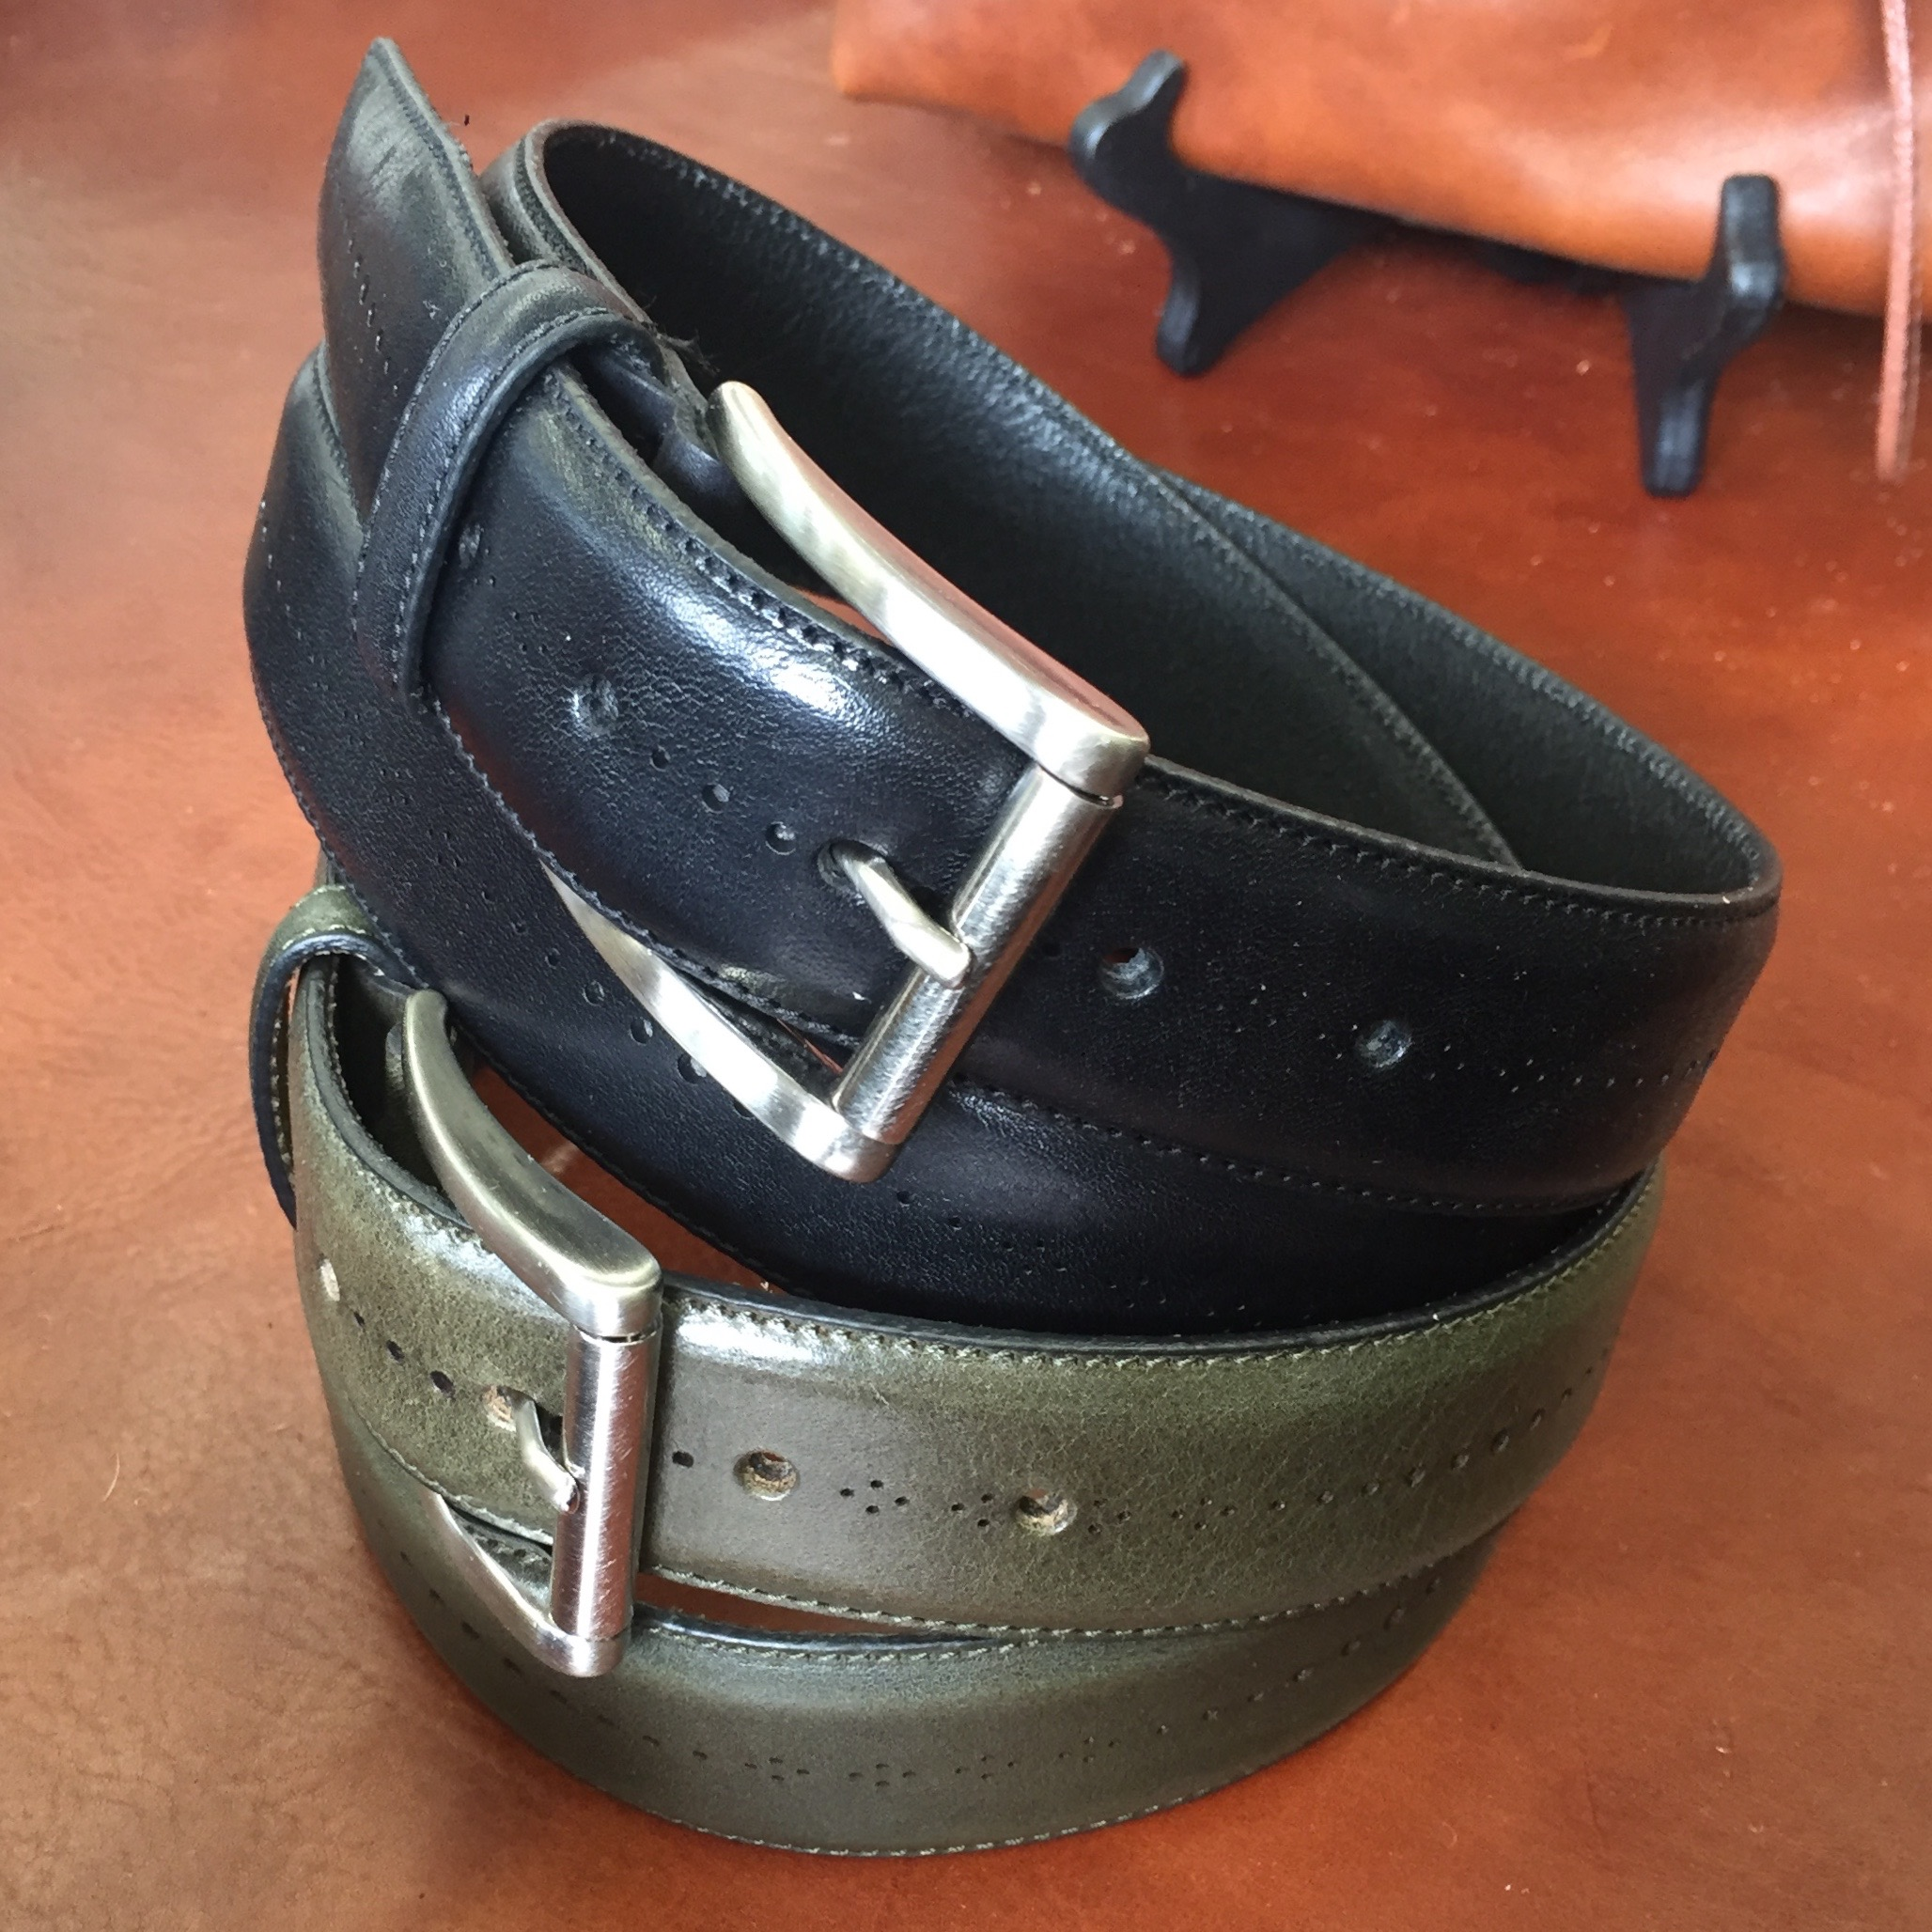 A couple of very chic understated belts for men. That green is delish.